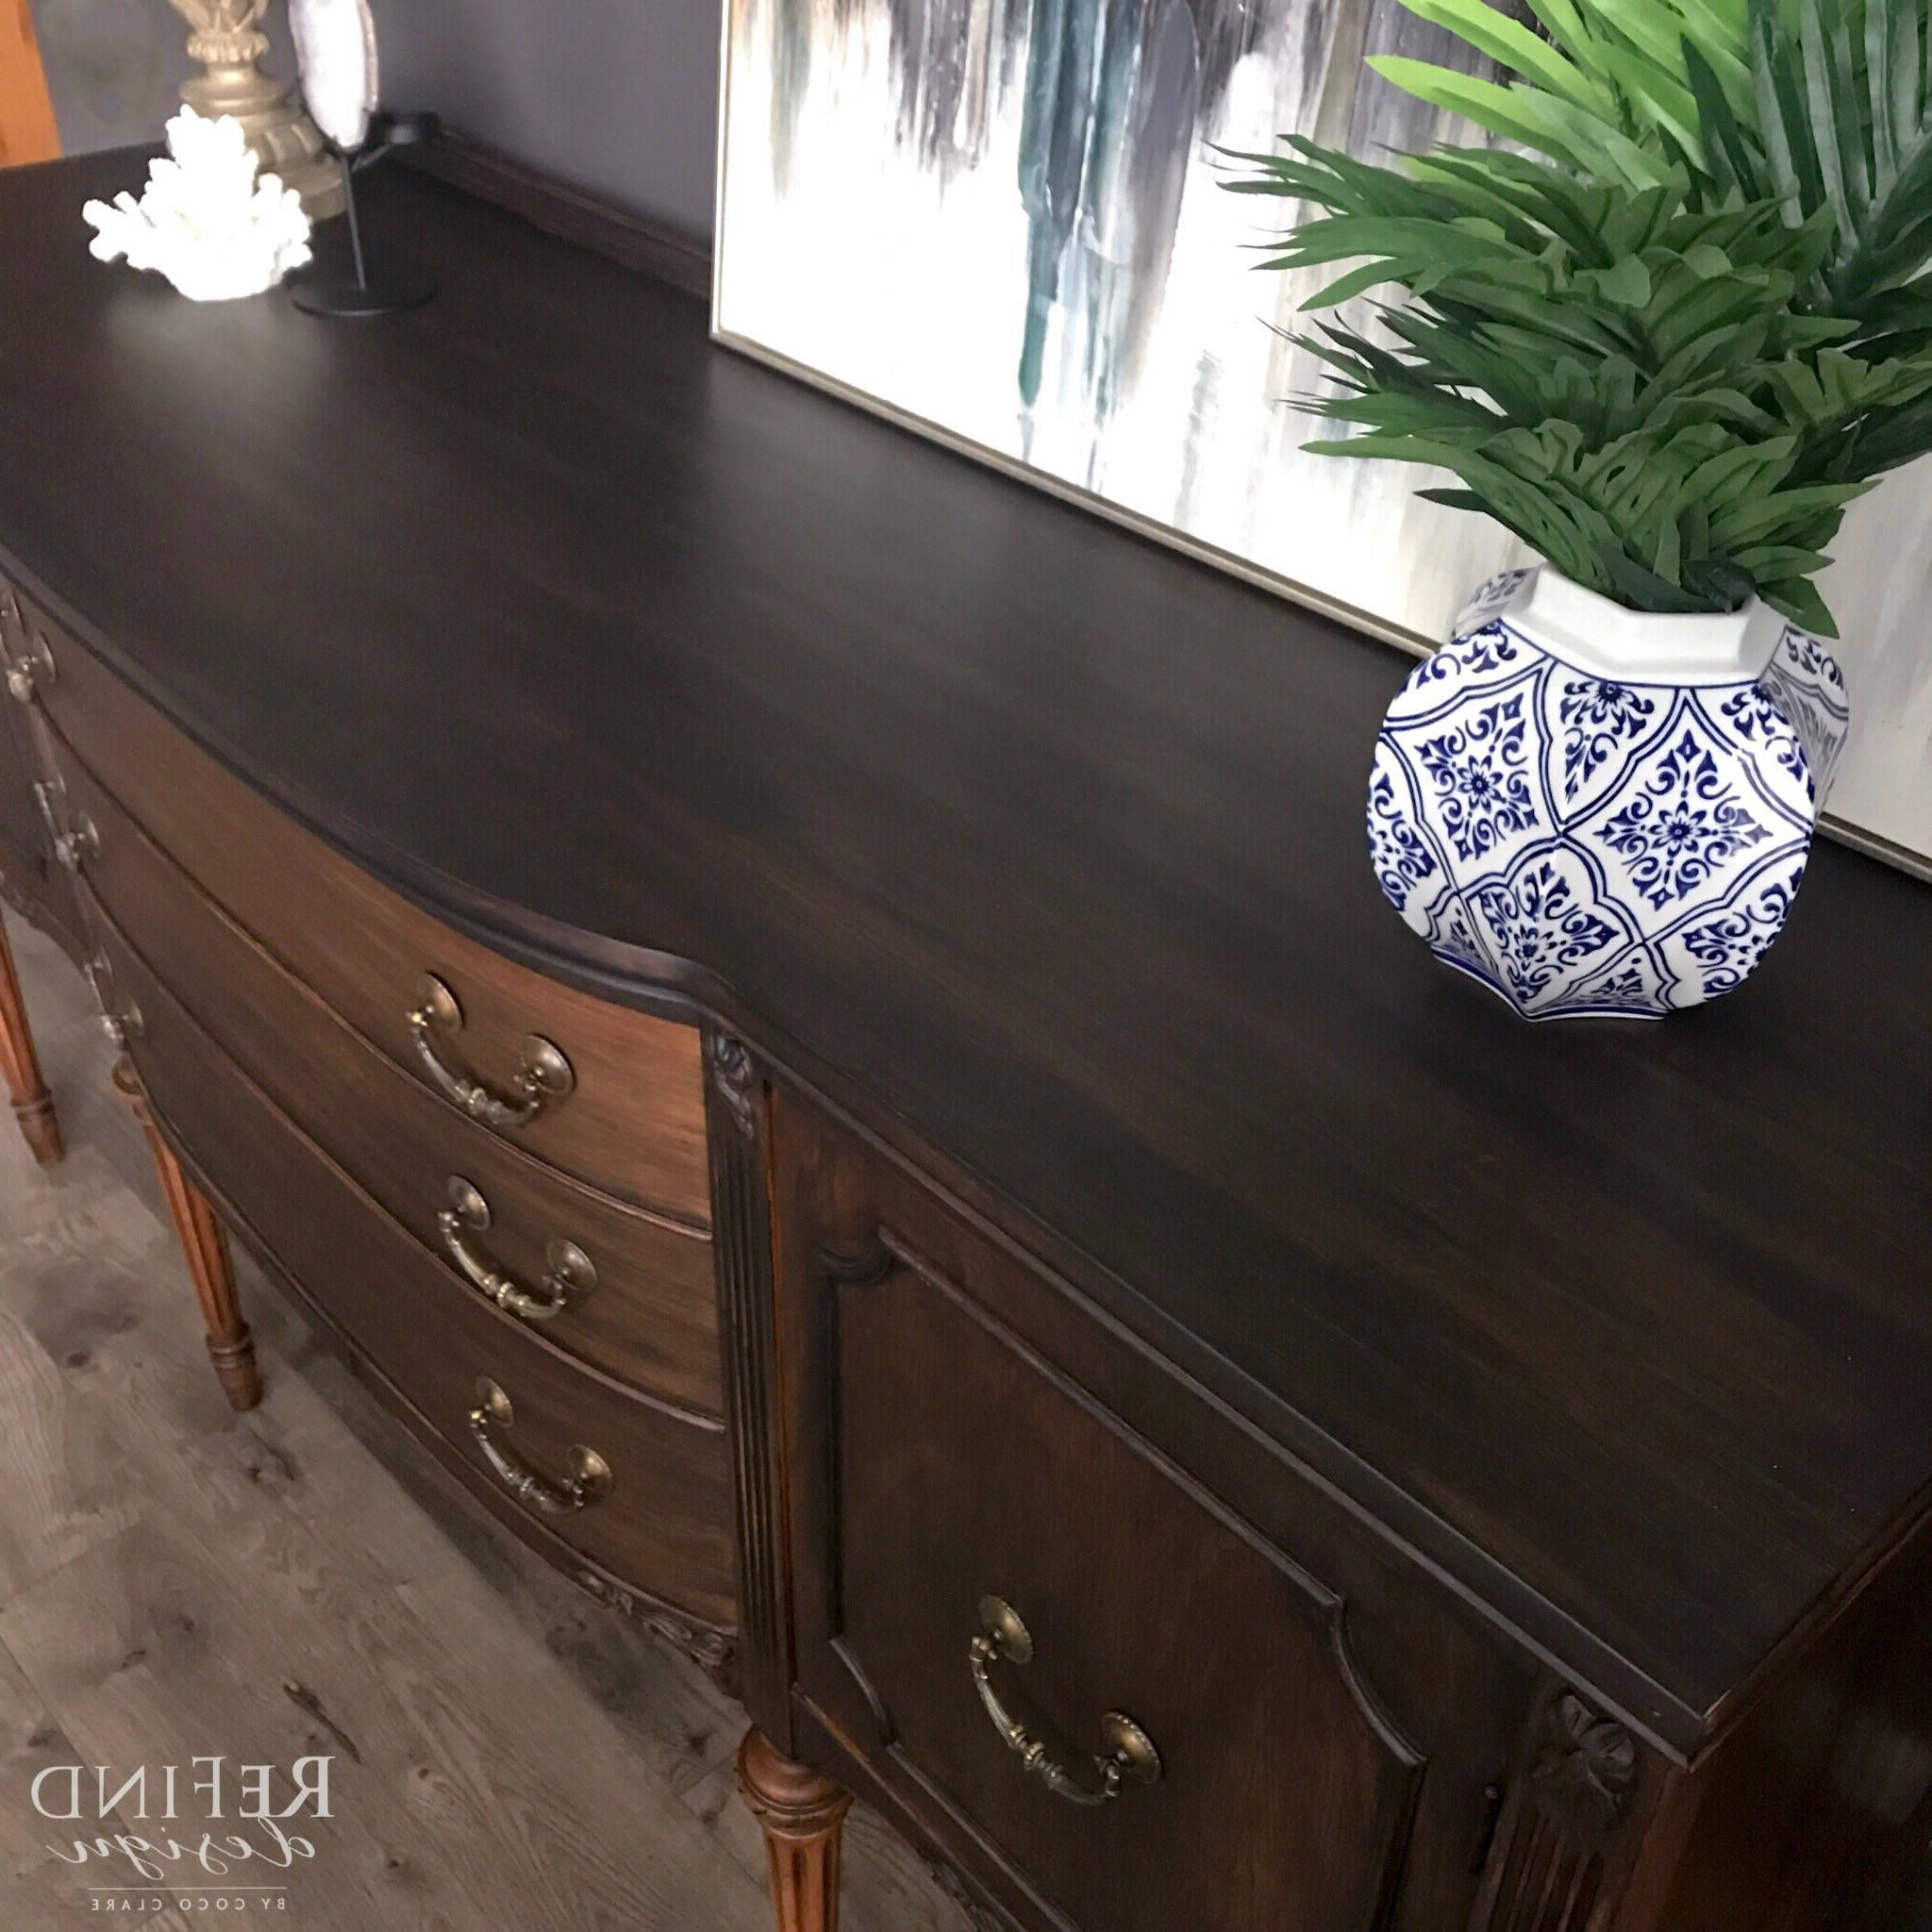 Sold Vintage Traditional Buffet, Black Modern Sideboard Intended For Favorite Orner Traditional Wood Sideboards (View 19 of 20)